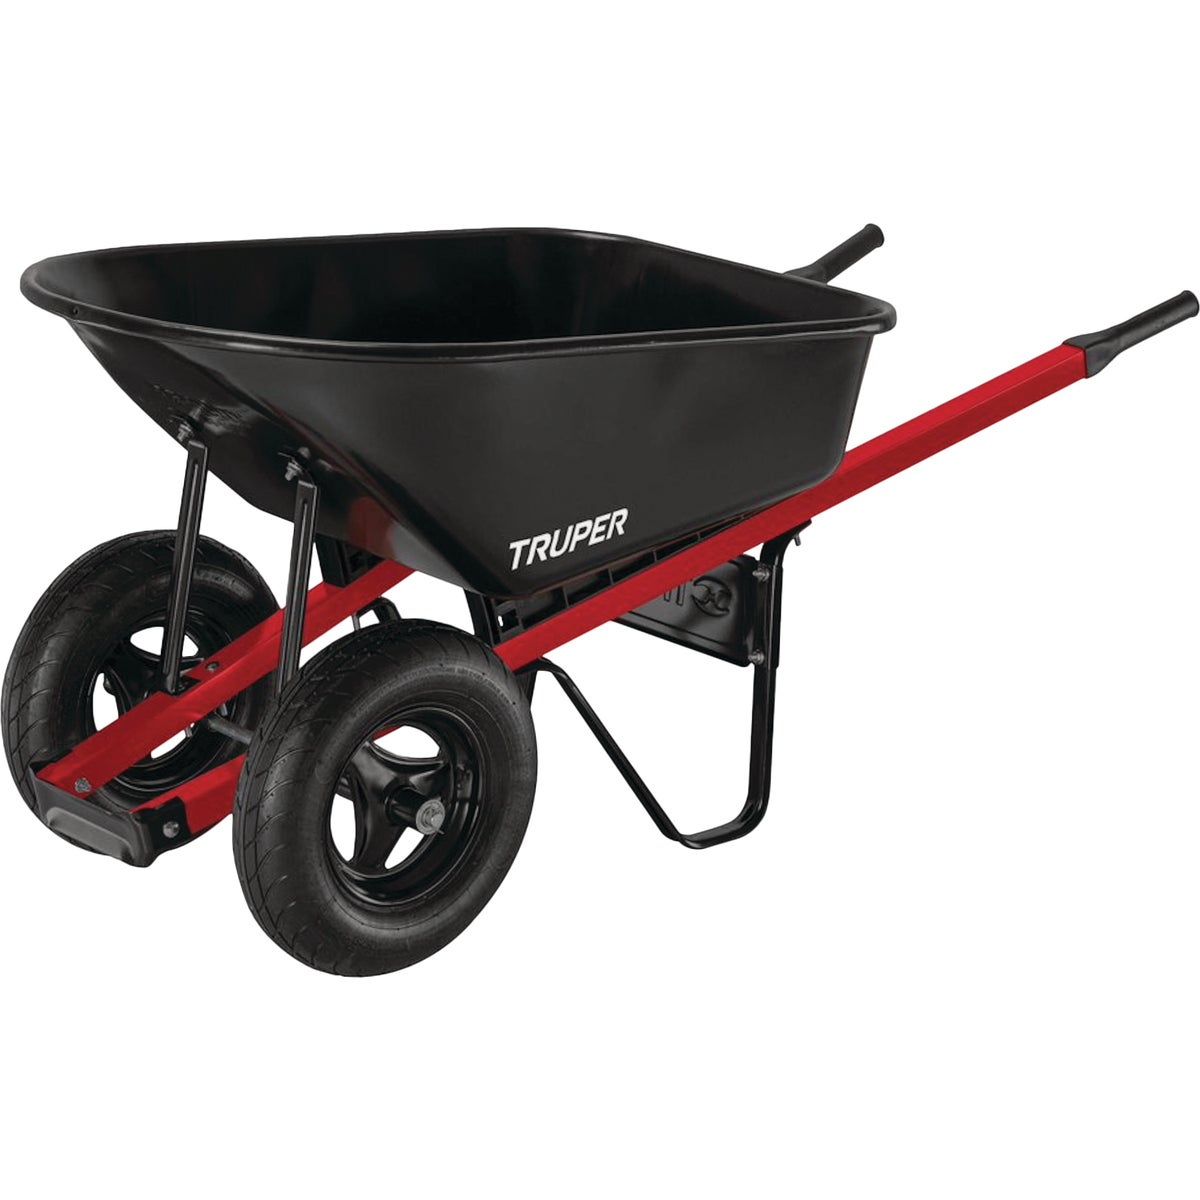 6CUFT STEEL WHEELBARROW - TS6-2W by Truper Herramientas